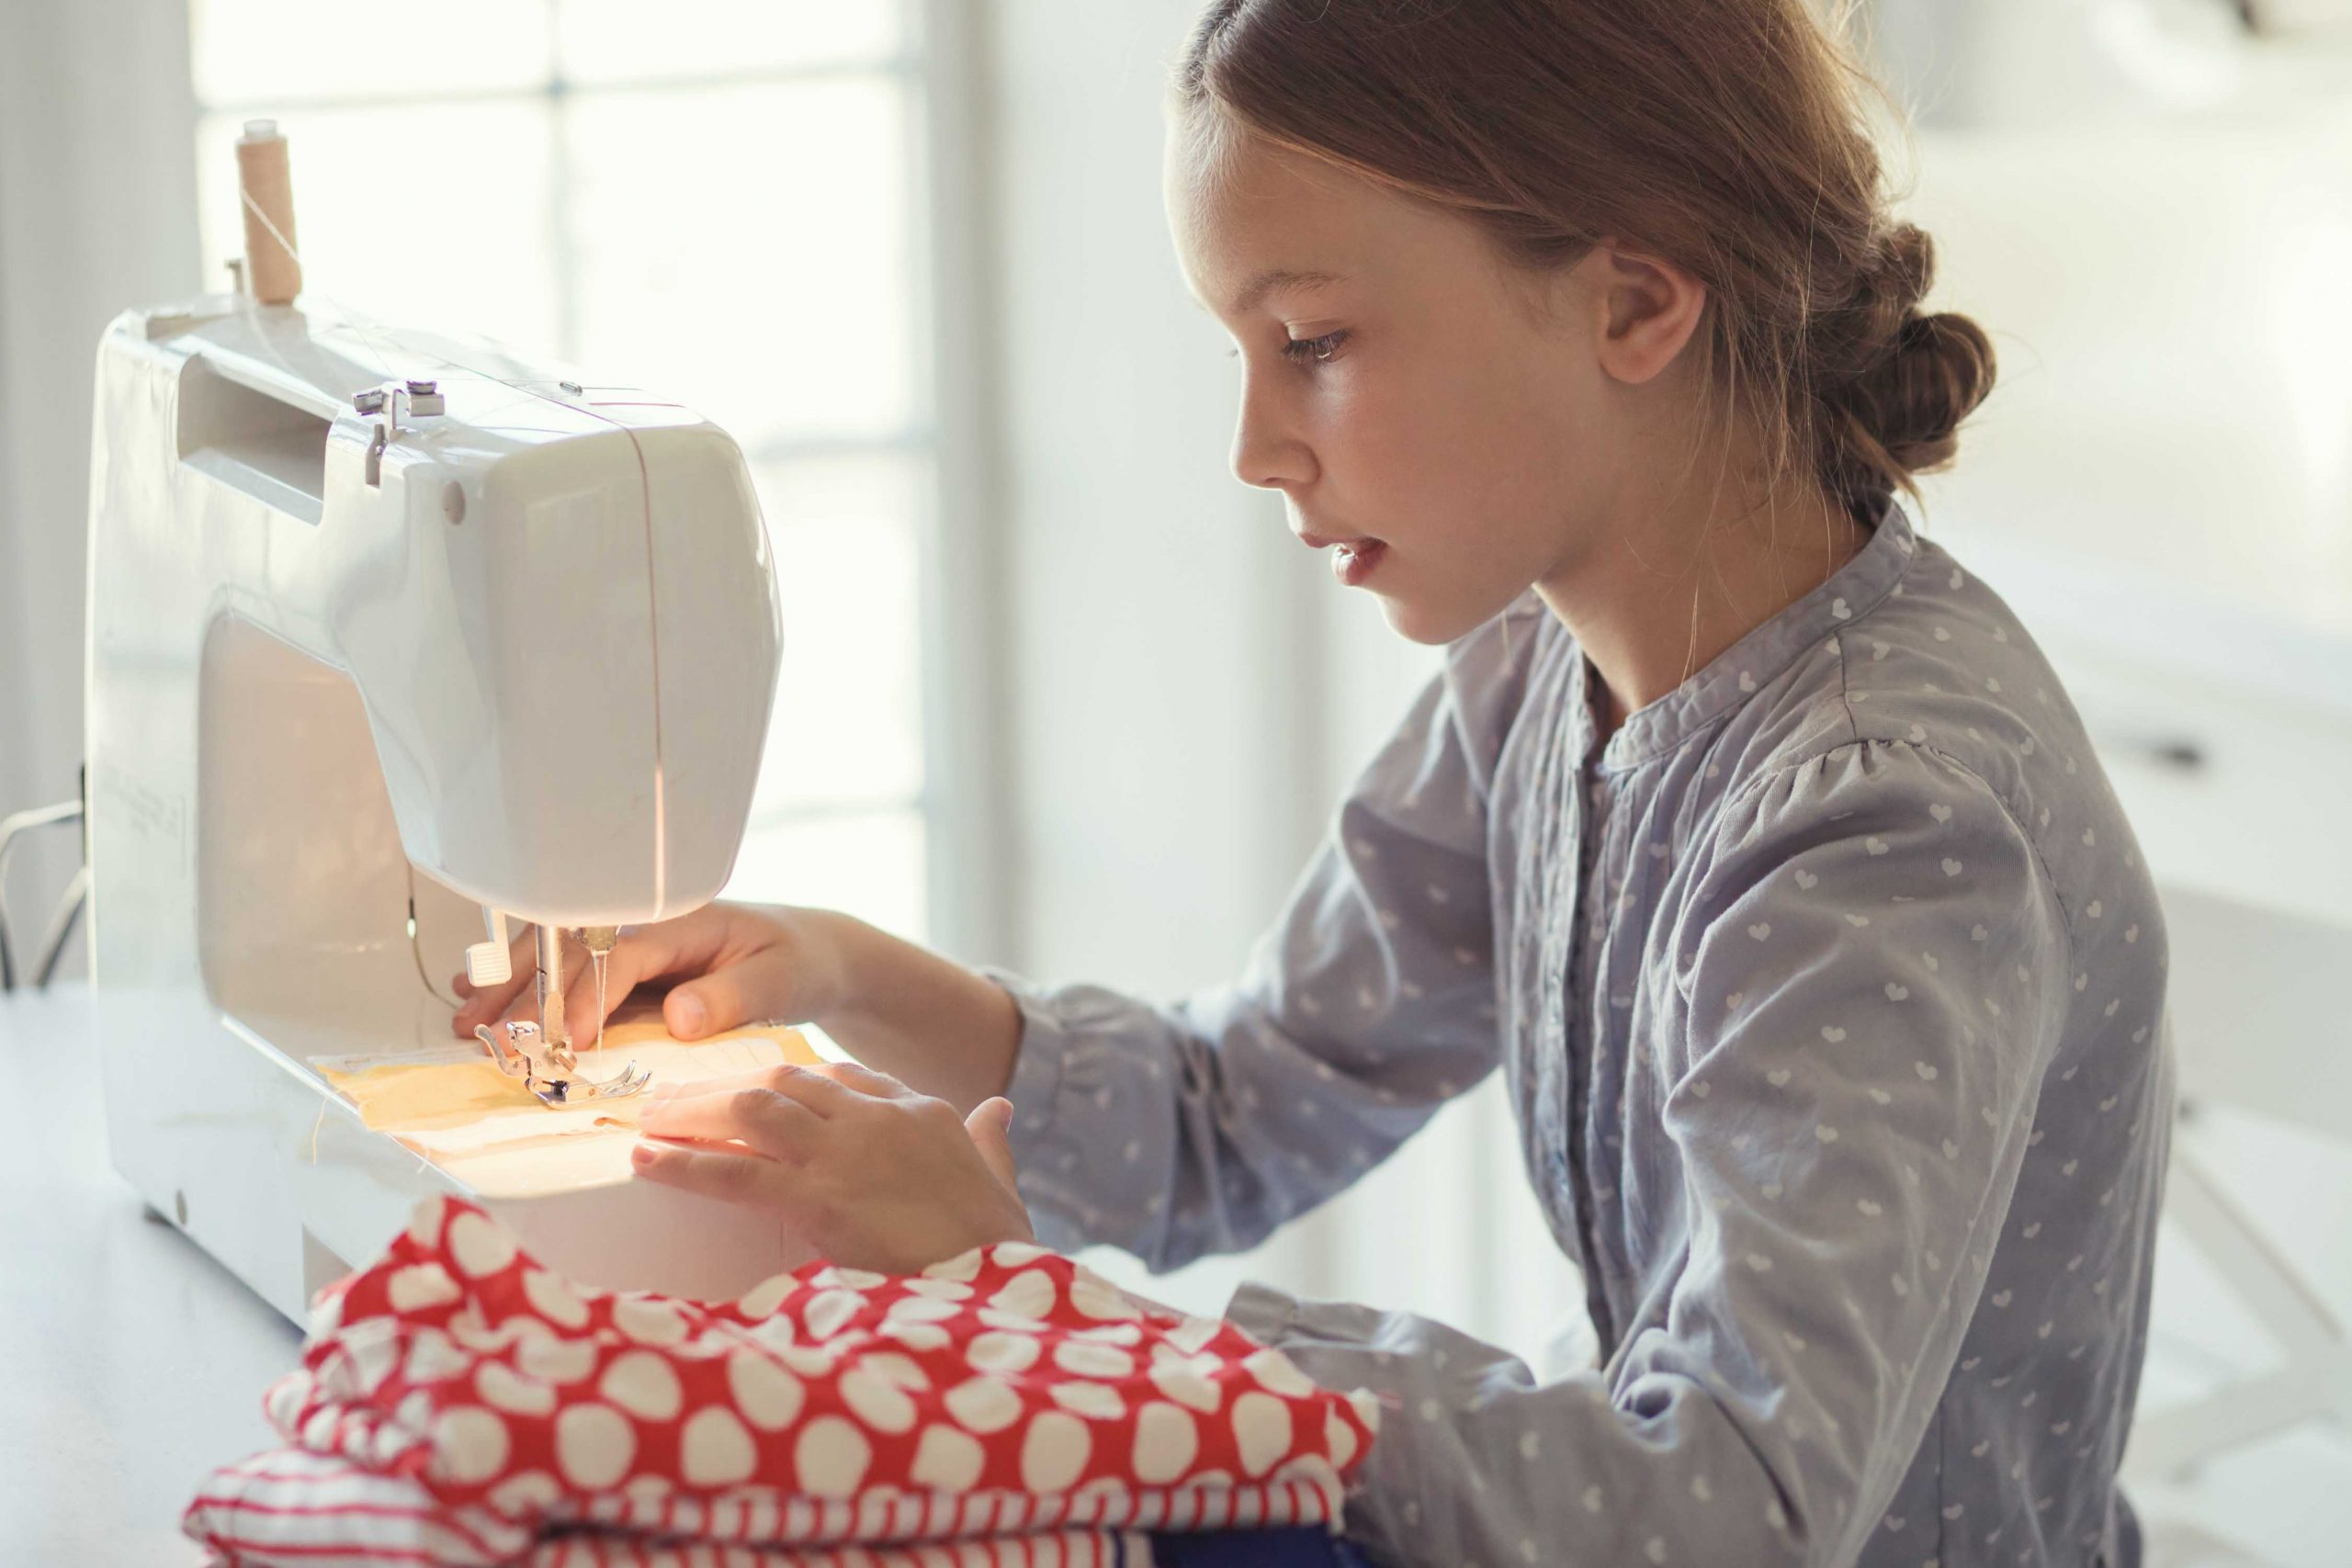 Get the right sewing machine when you want to learn to sew